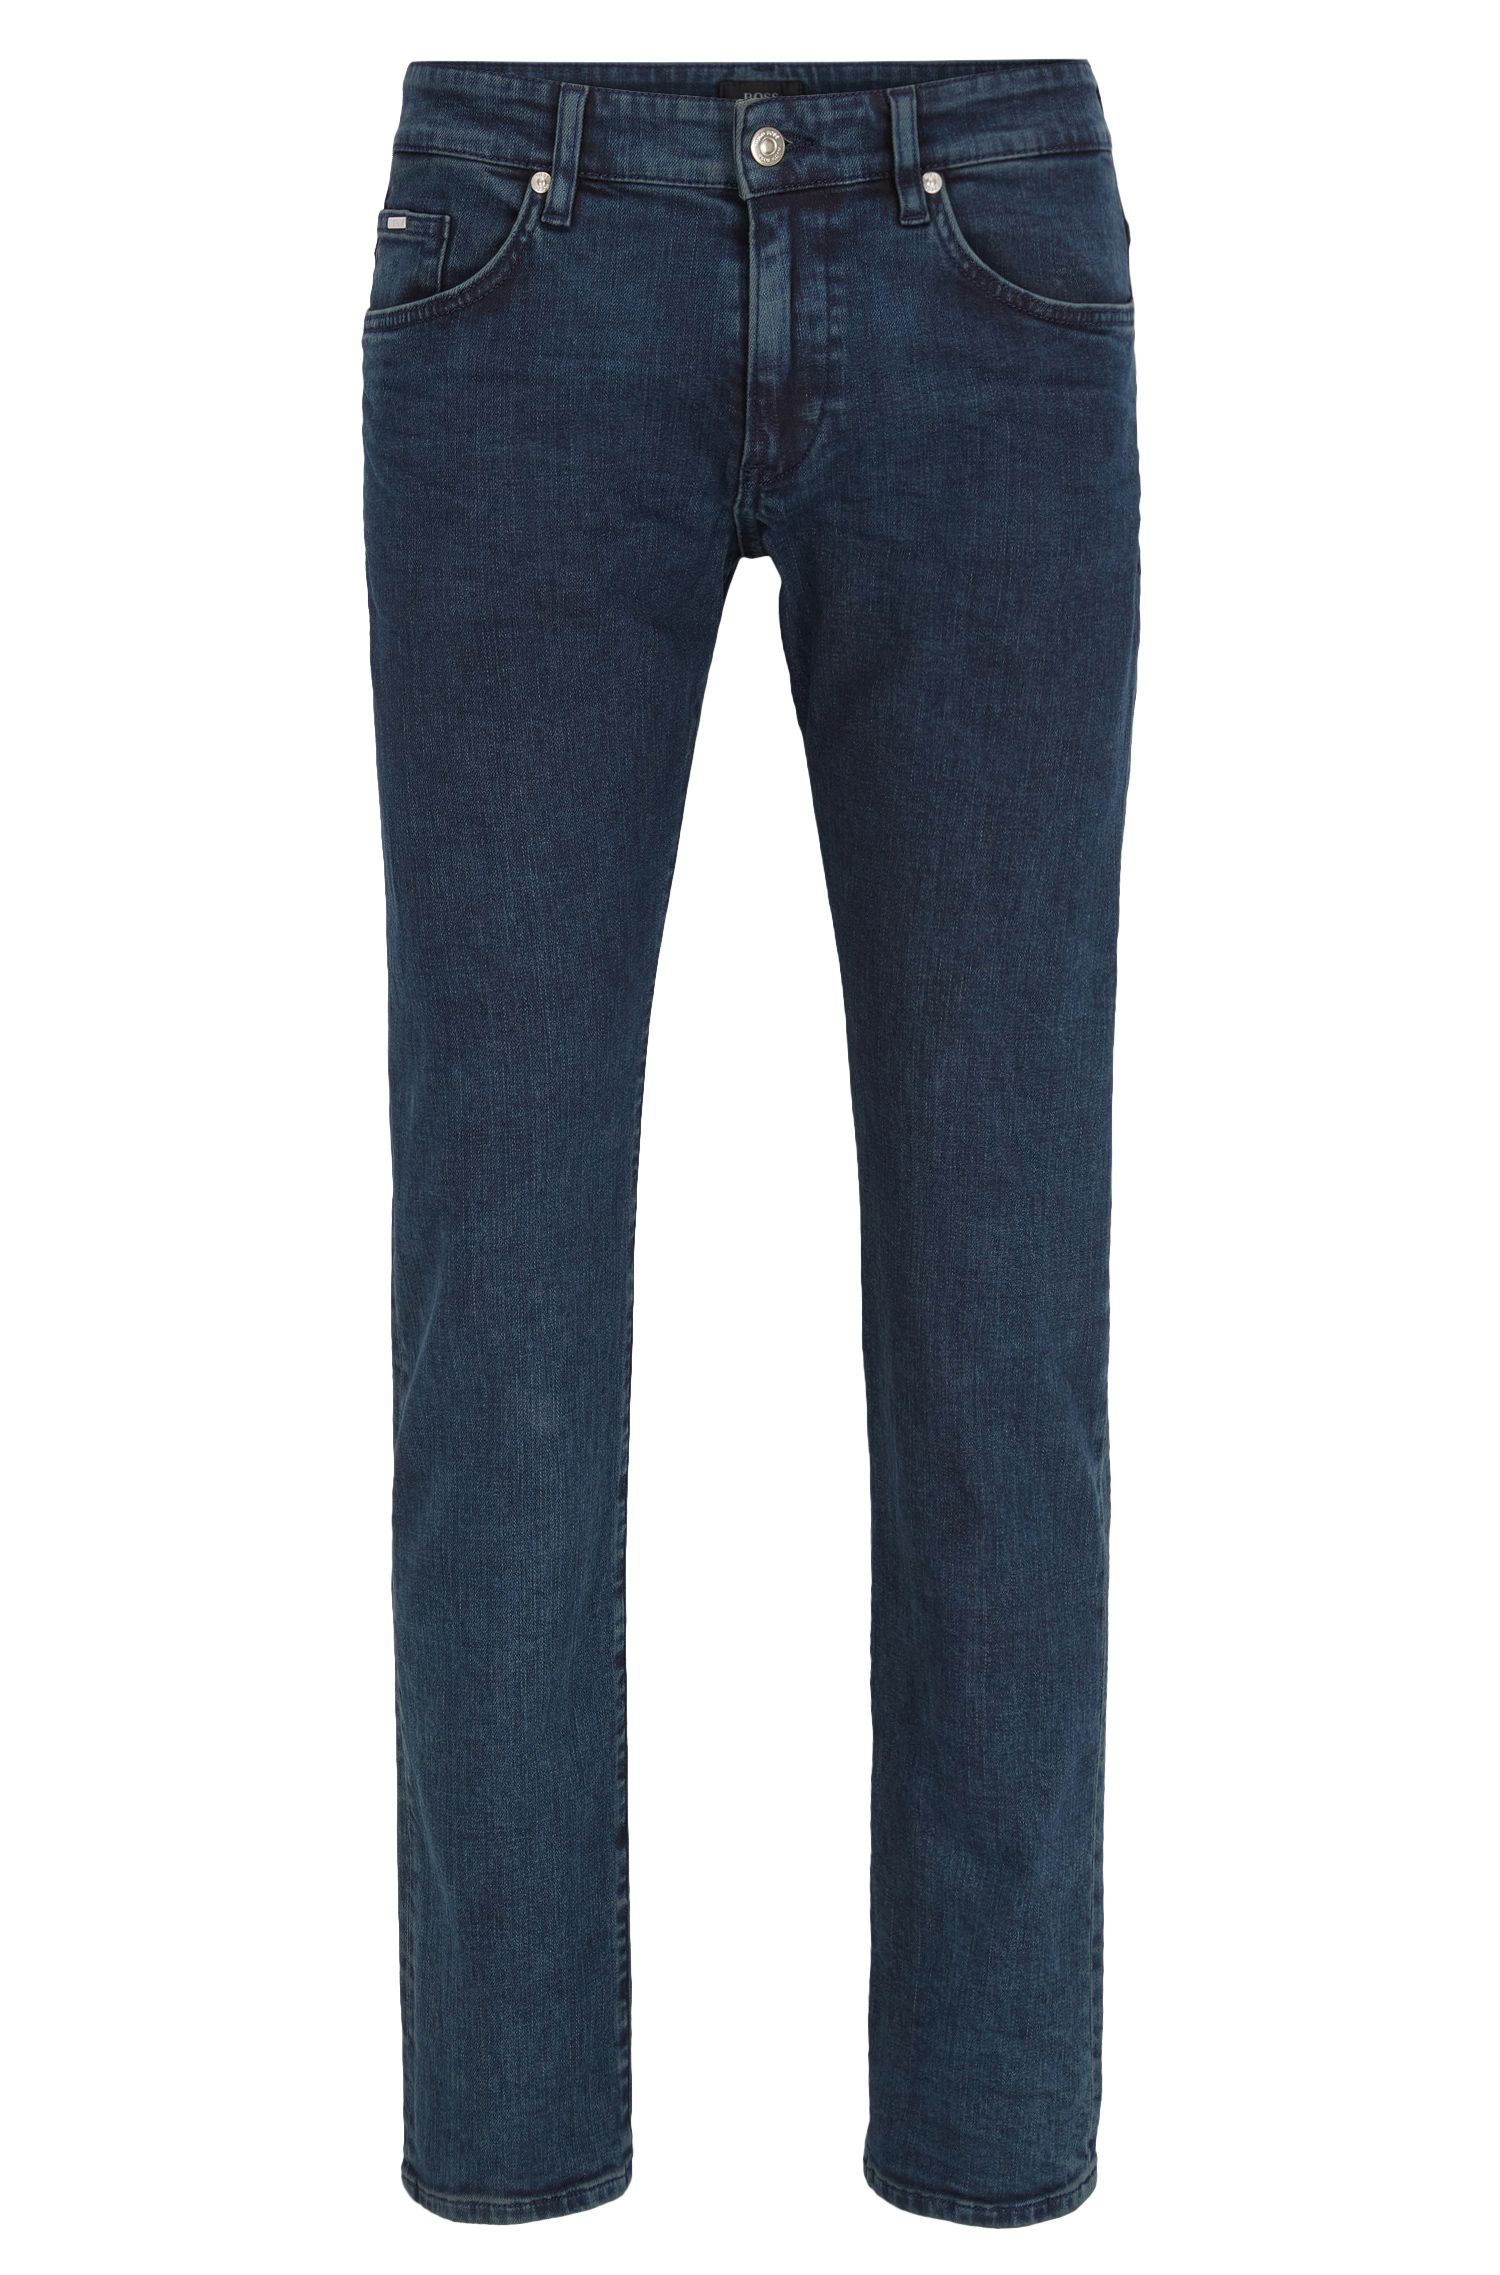 Jeans Slim Fit en denim stretch légèrement délavé